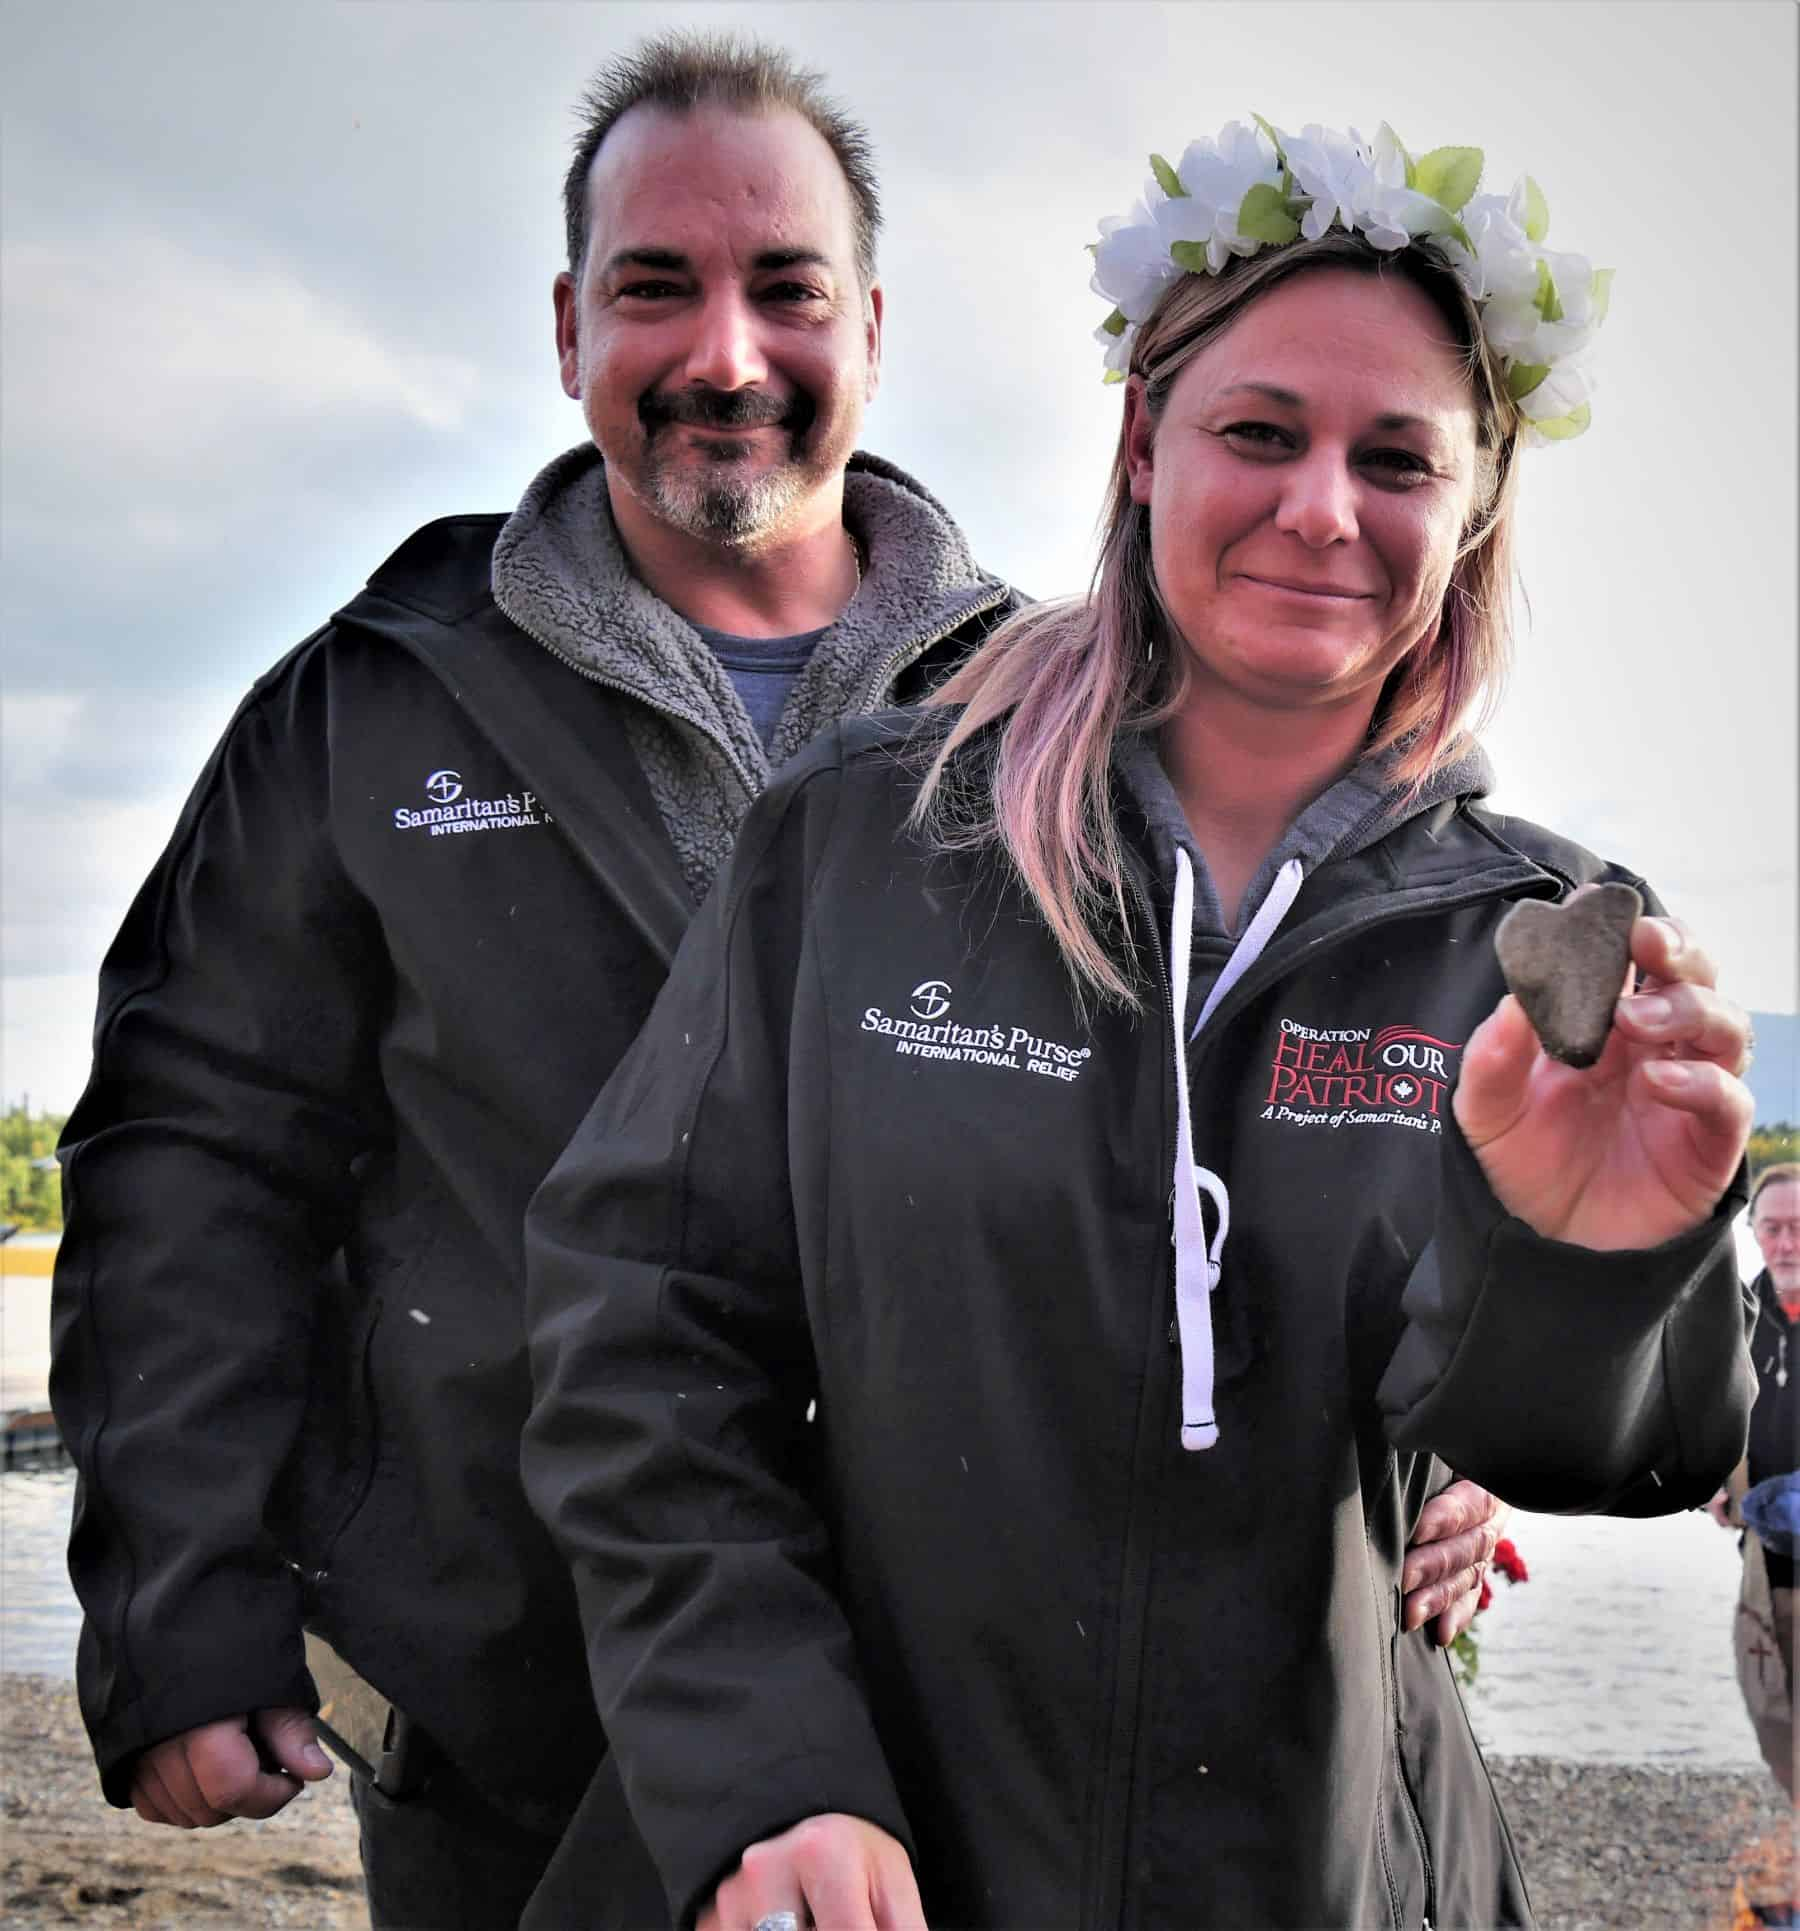 After renewing their wedding vows at Operation Heal Our Patriots, Jennifer was excited to find a 'heart rock' where the ceremony was held on the shore of lake Clark.